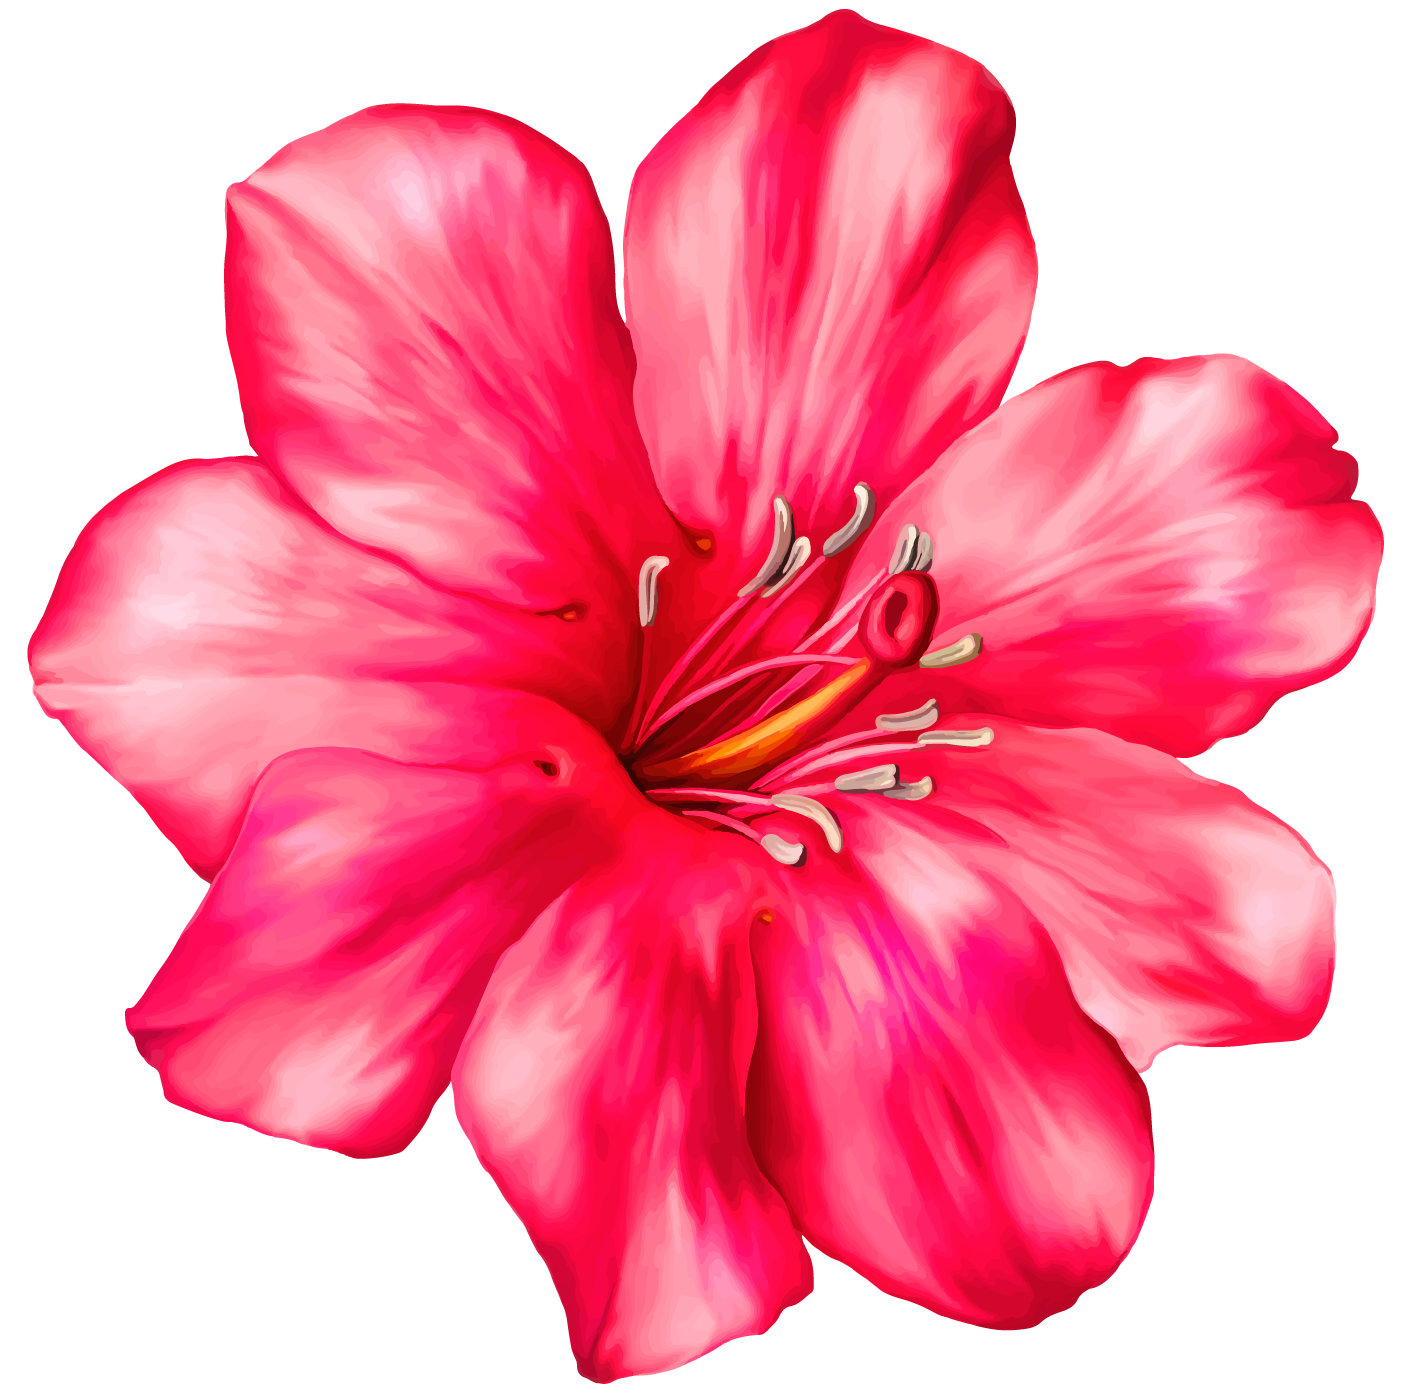 Exotic flower clip art clipground exotic pink flower png clipart picture izmirmasajfo Images